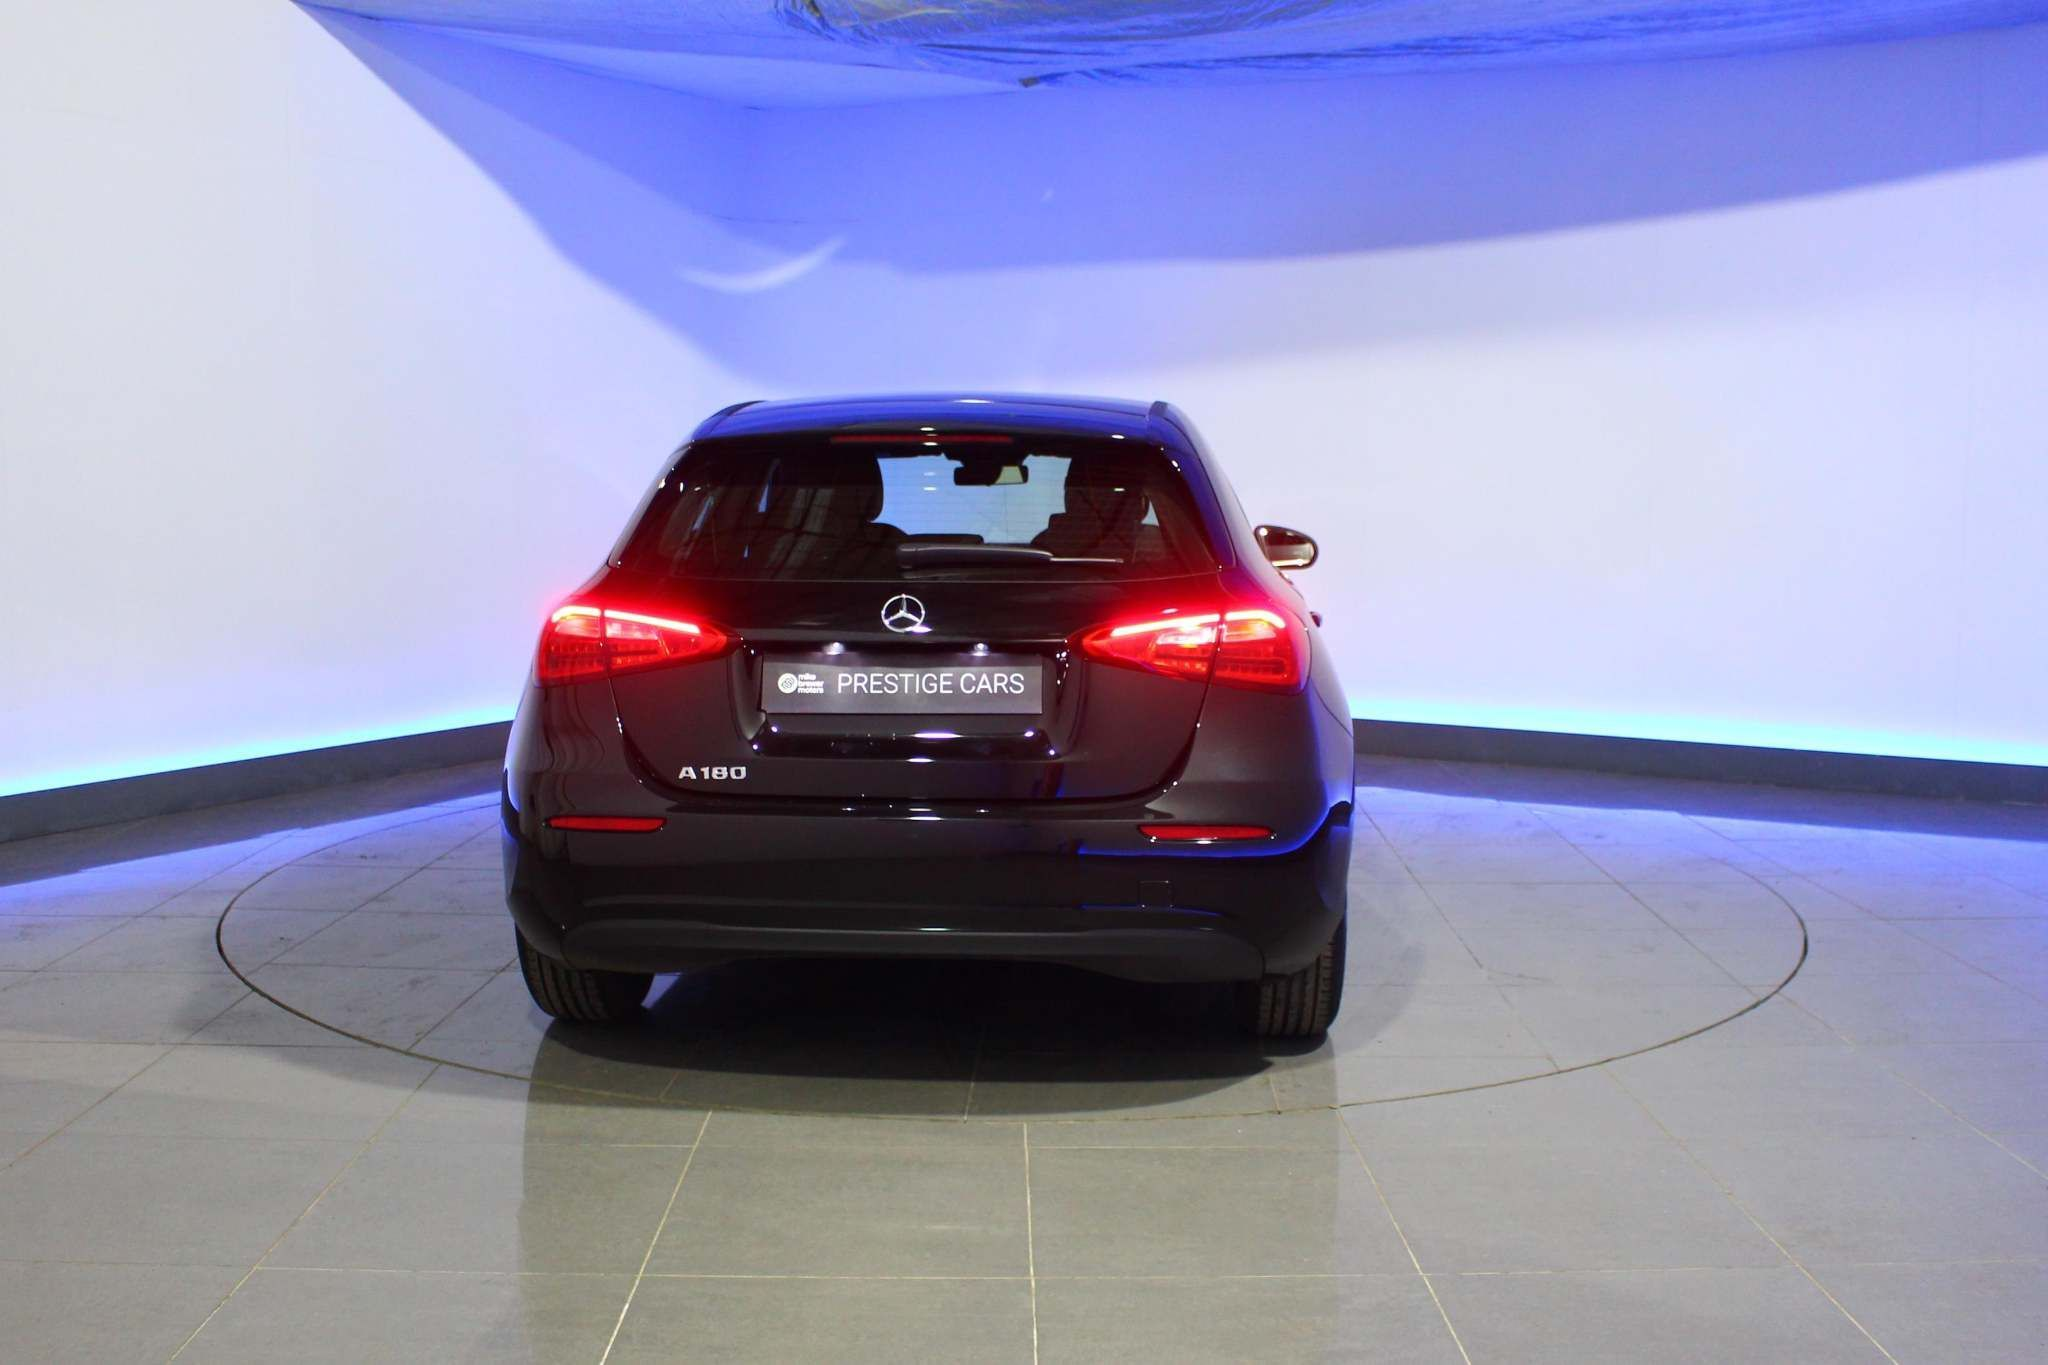 Used Mercedes-Benz A Class 1.3 A180 Se (s/s) 5dr